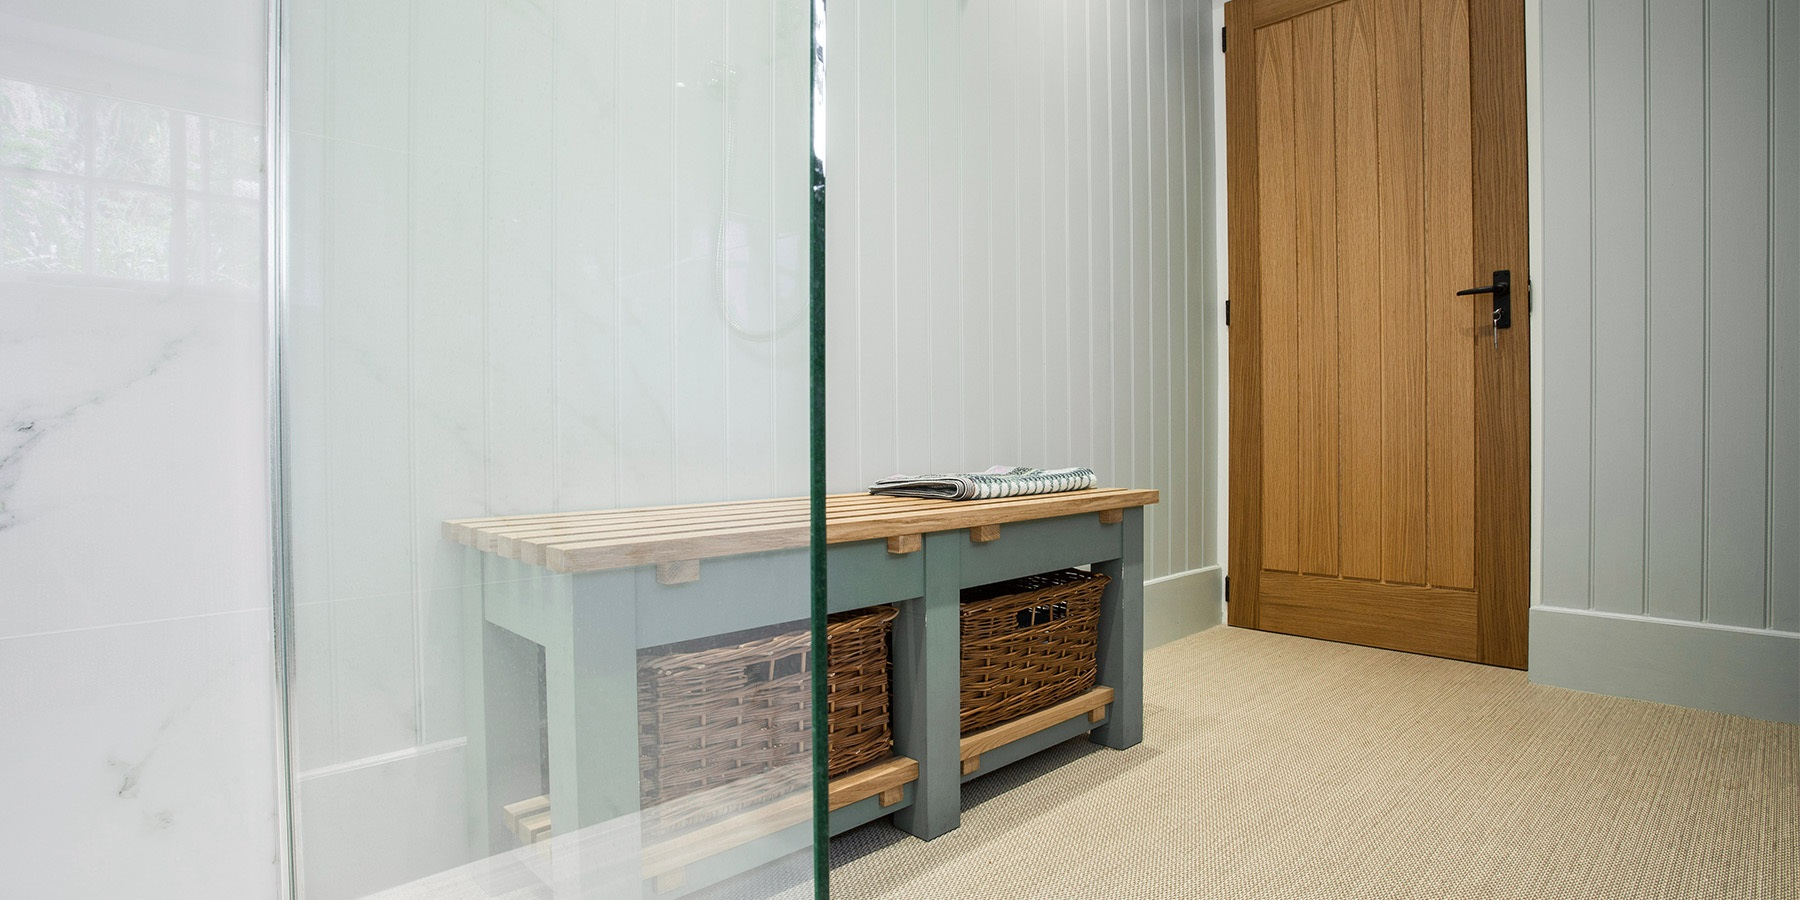 Bespoke Wet Room Design - Burlanes walk-in wet room and shower area with handmade bench seating.